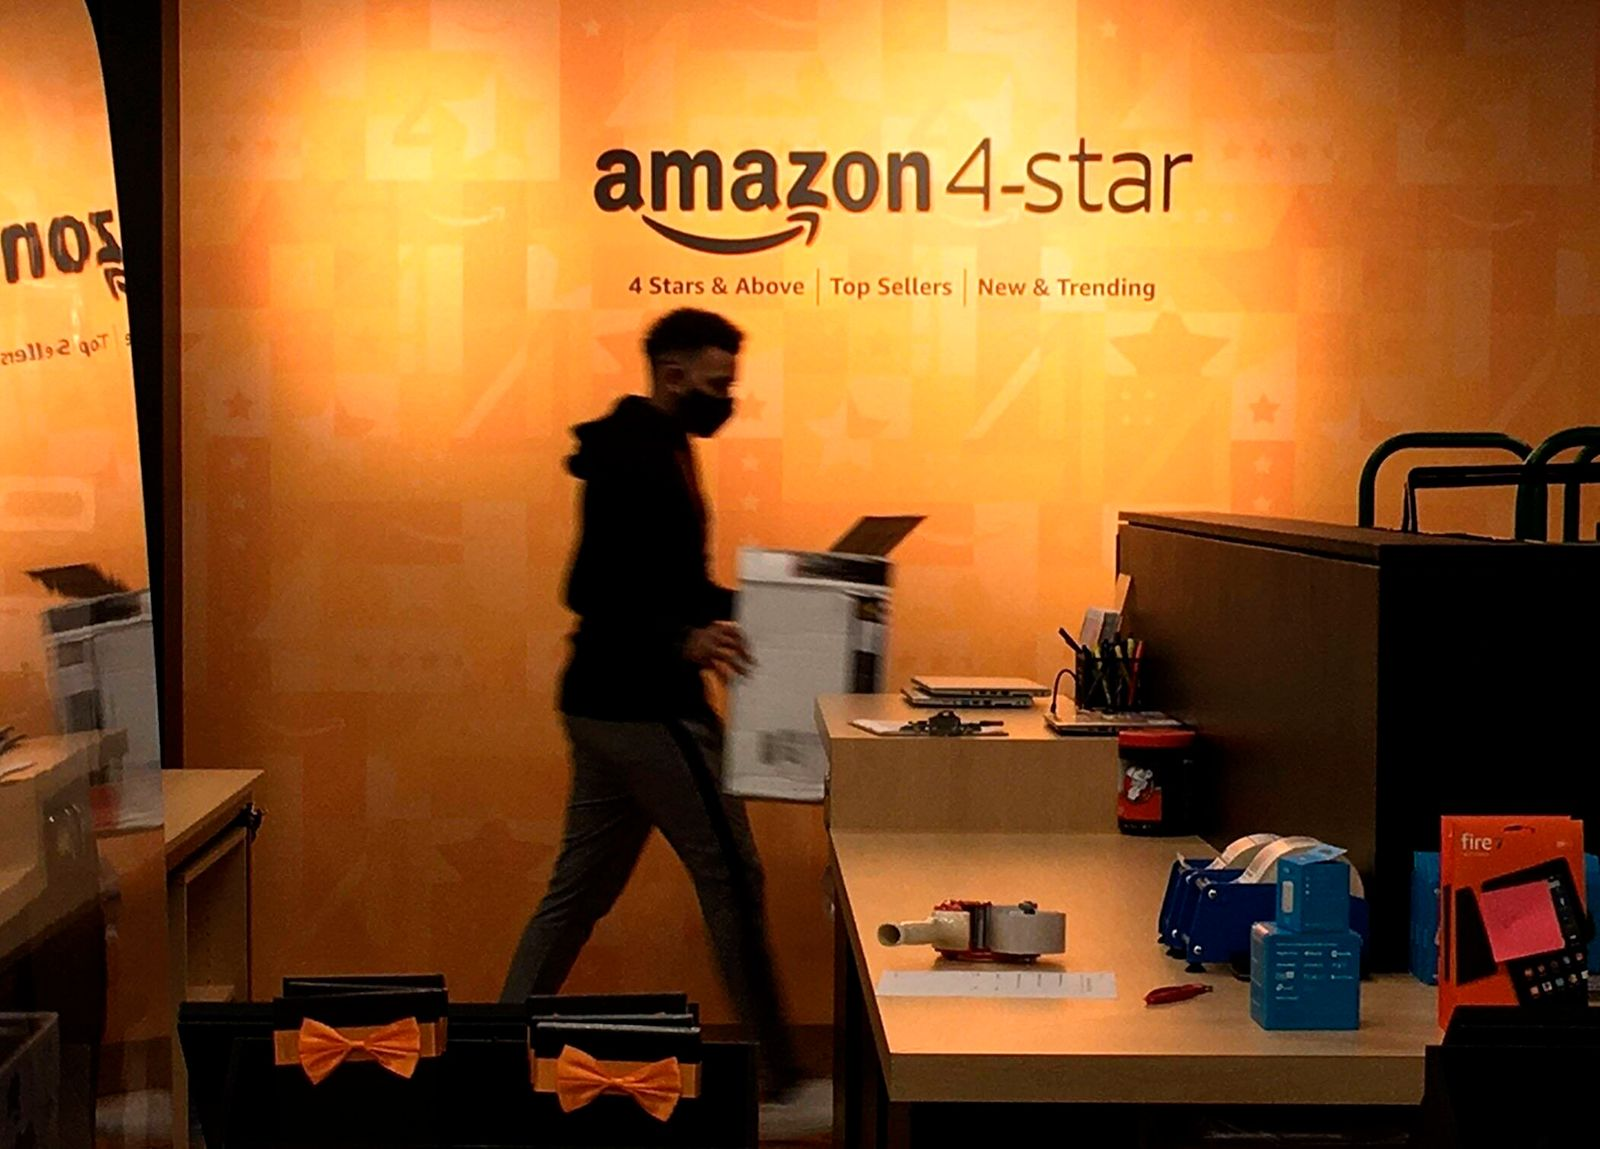 September 16, 2020, Palm Beach, Florida, USA: The first Amazon 4-star store in Florida opened in The Gardens Mall Wedne